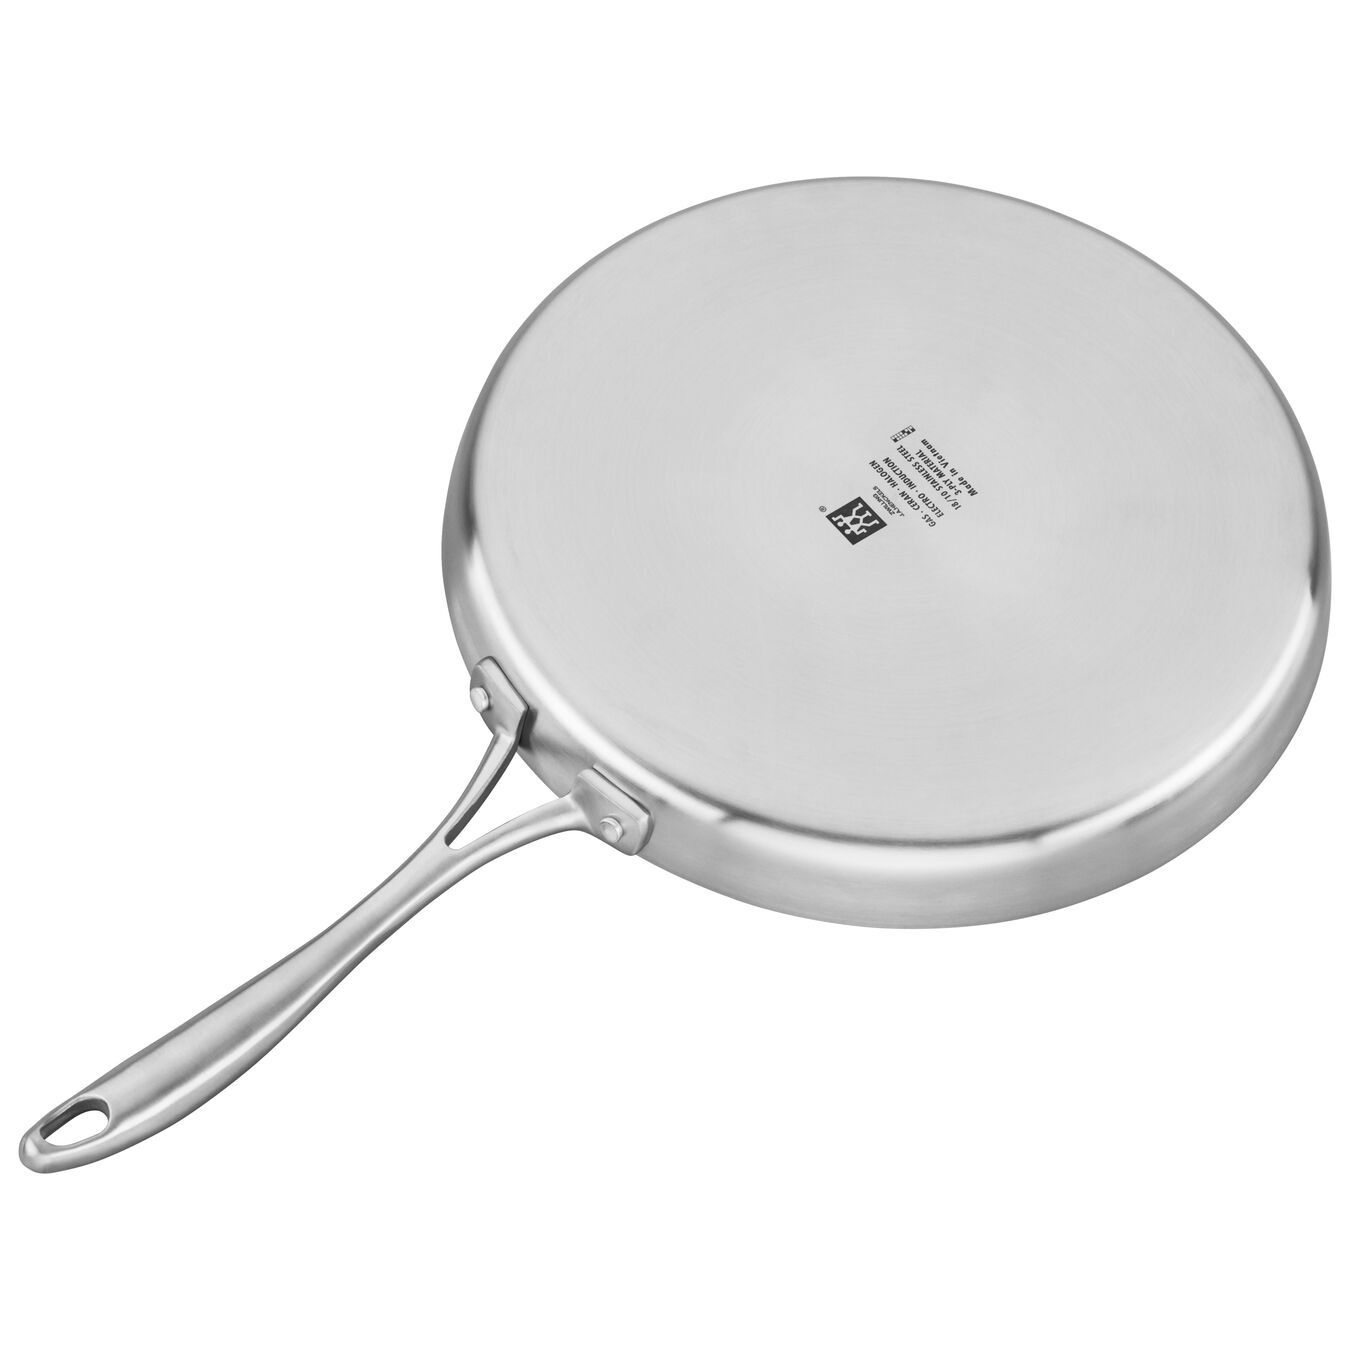 3-ply 12-inch Stainless Steel Ceramic Nonstick Griddle,,large 3